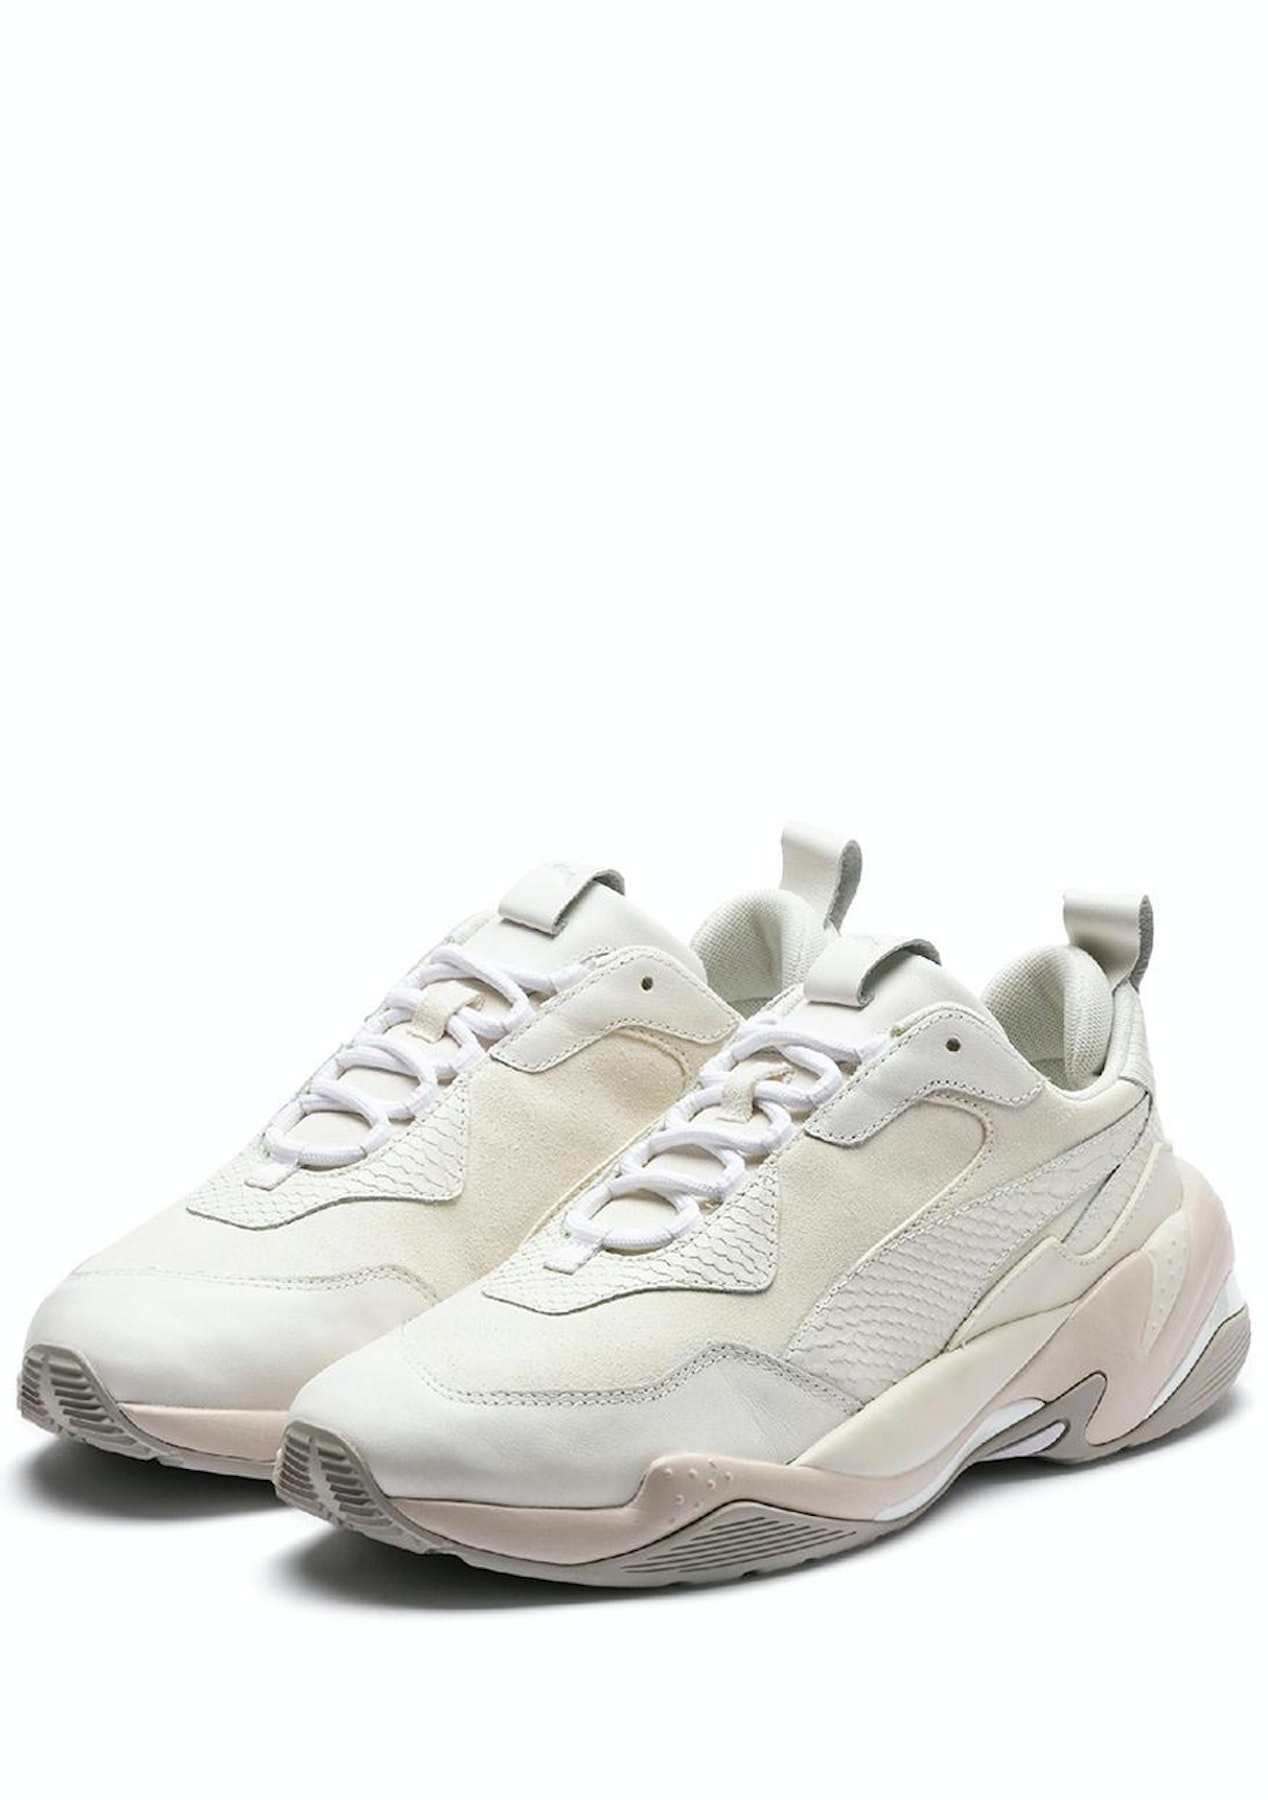 48267d0264d3 Puma - Womens Thunder Desert - Bright White - Puma New Styles Added - Onceit